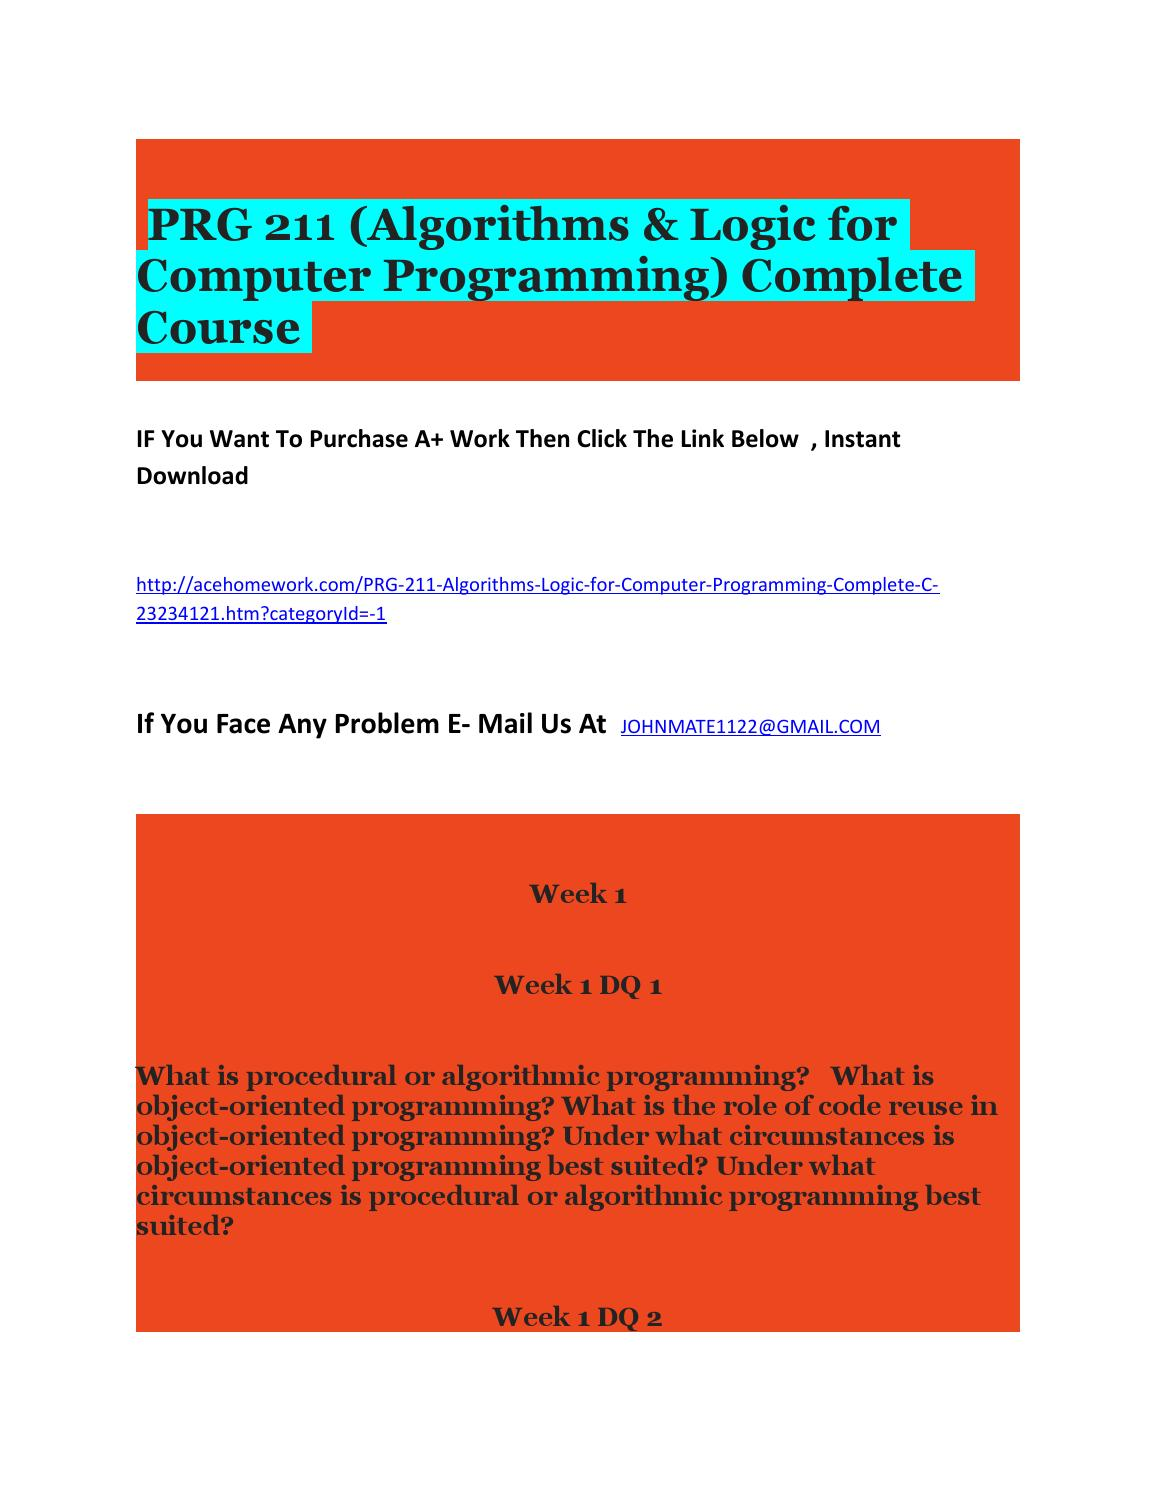 a course on algorithms logic for Read this essay on prg 211 (algorithms & logic for computer programming) complete course come browse our large digital warehouse of free sample essays get the knowledge you need in order to pass your classes and more.